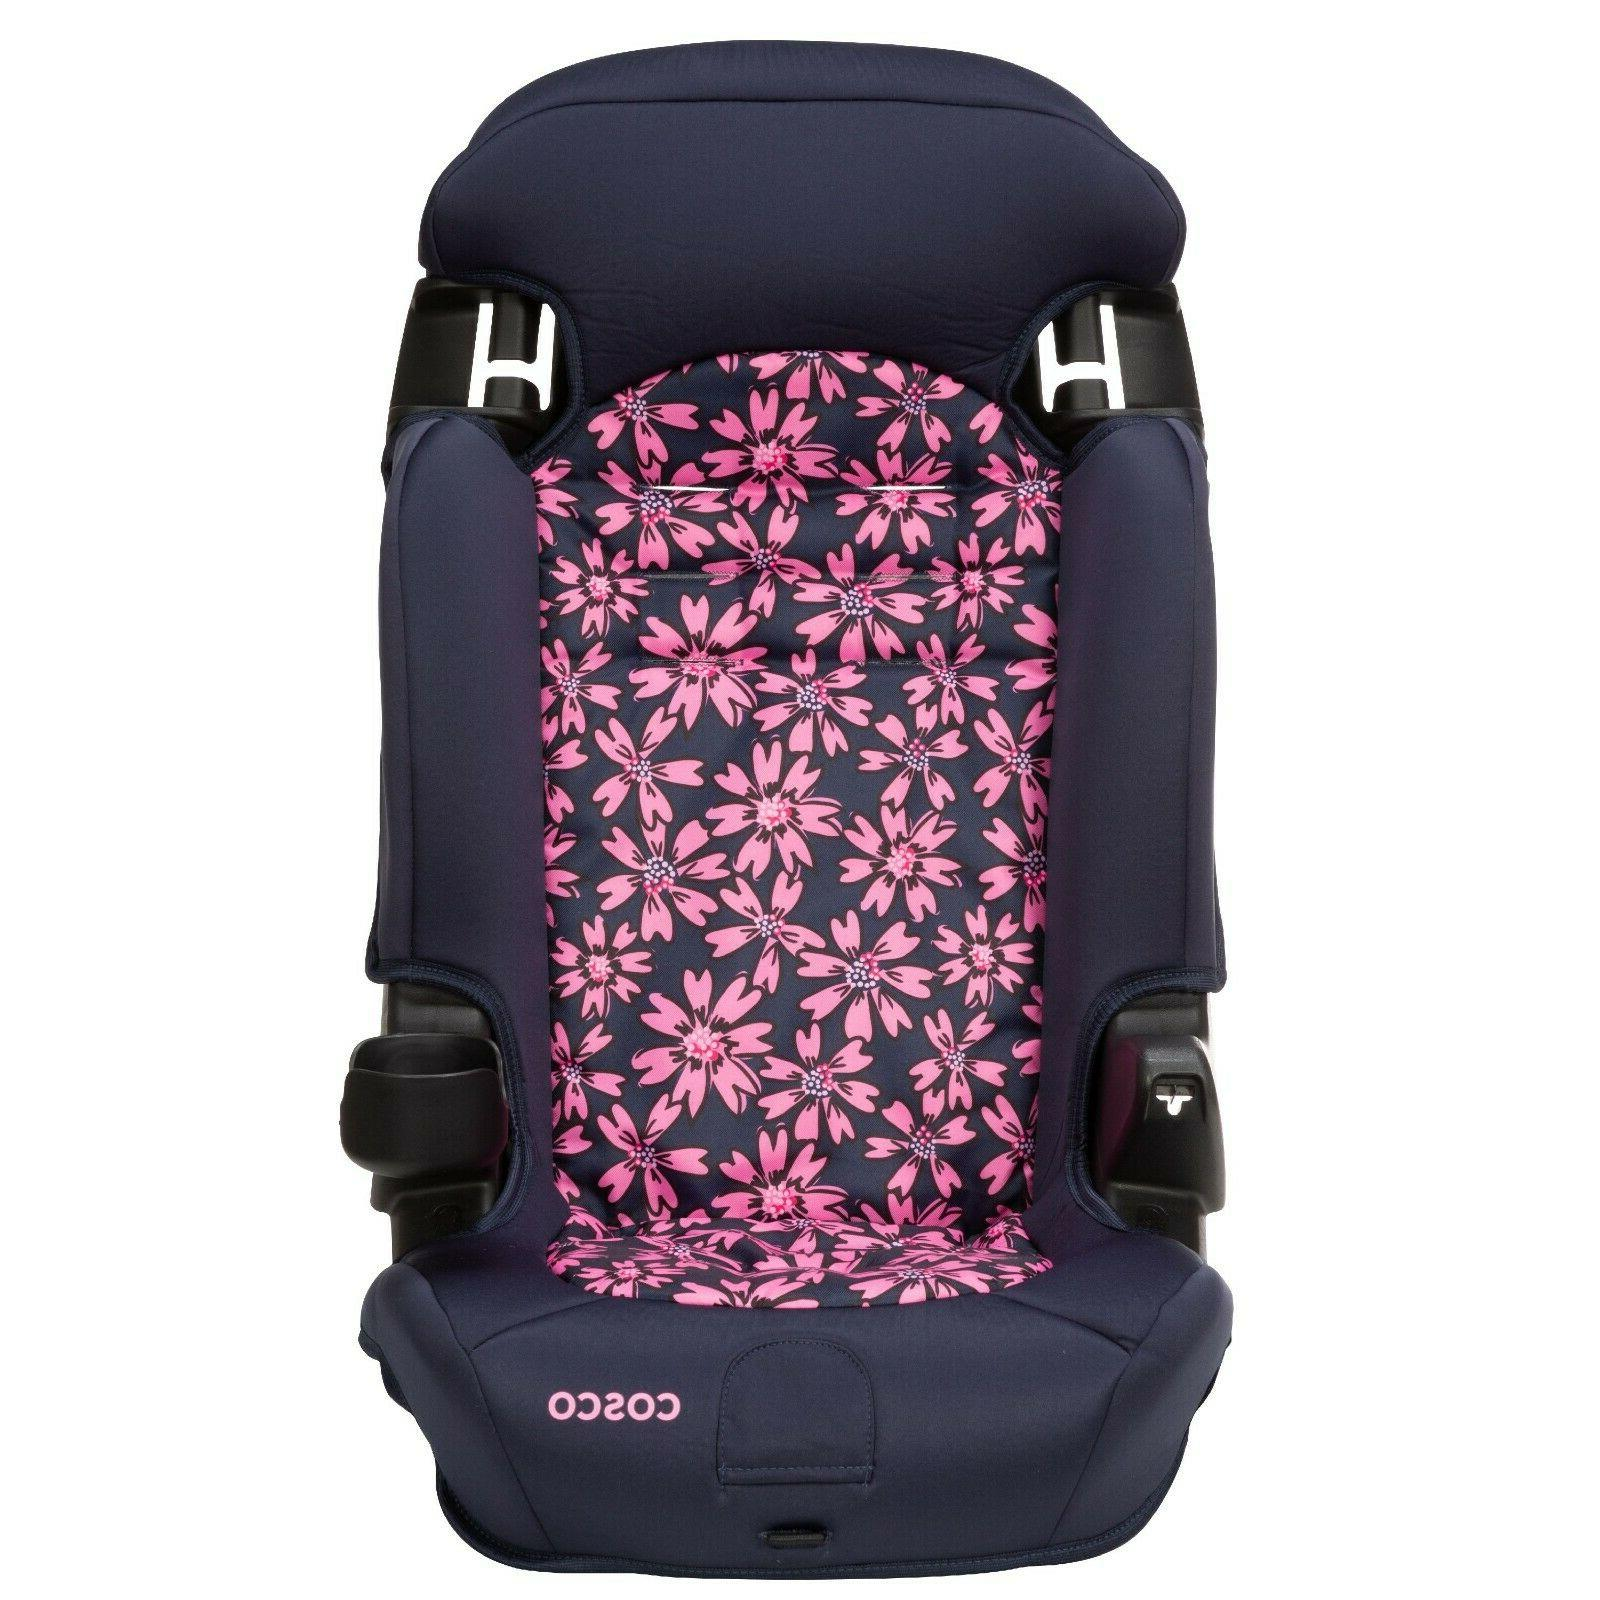 Convertible Seat Safety Booster in Baby Car